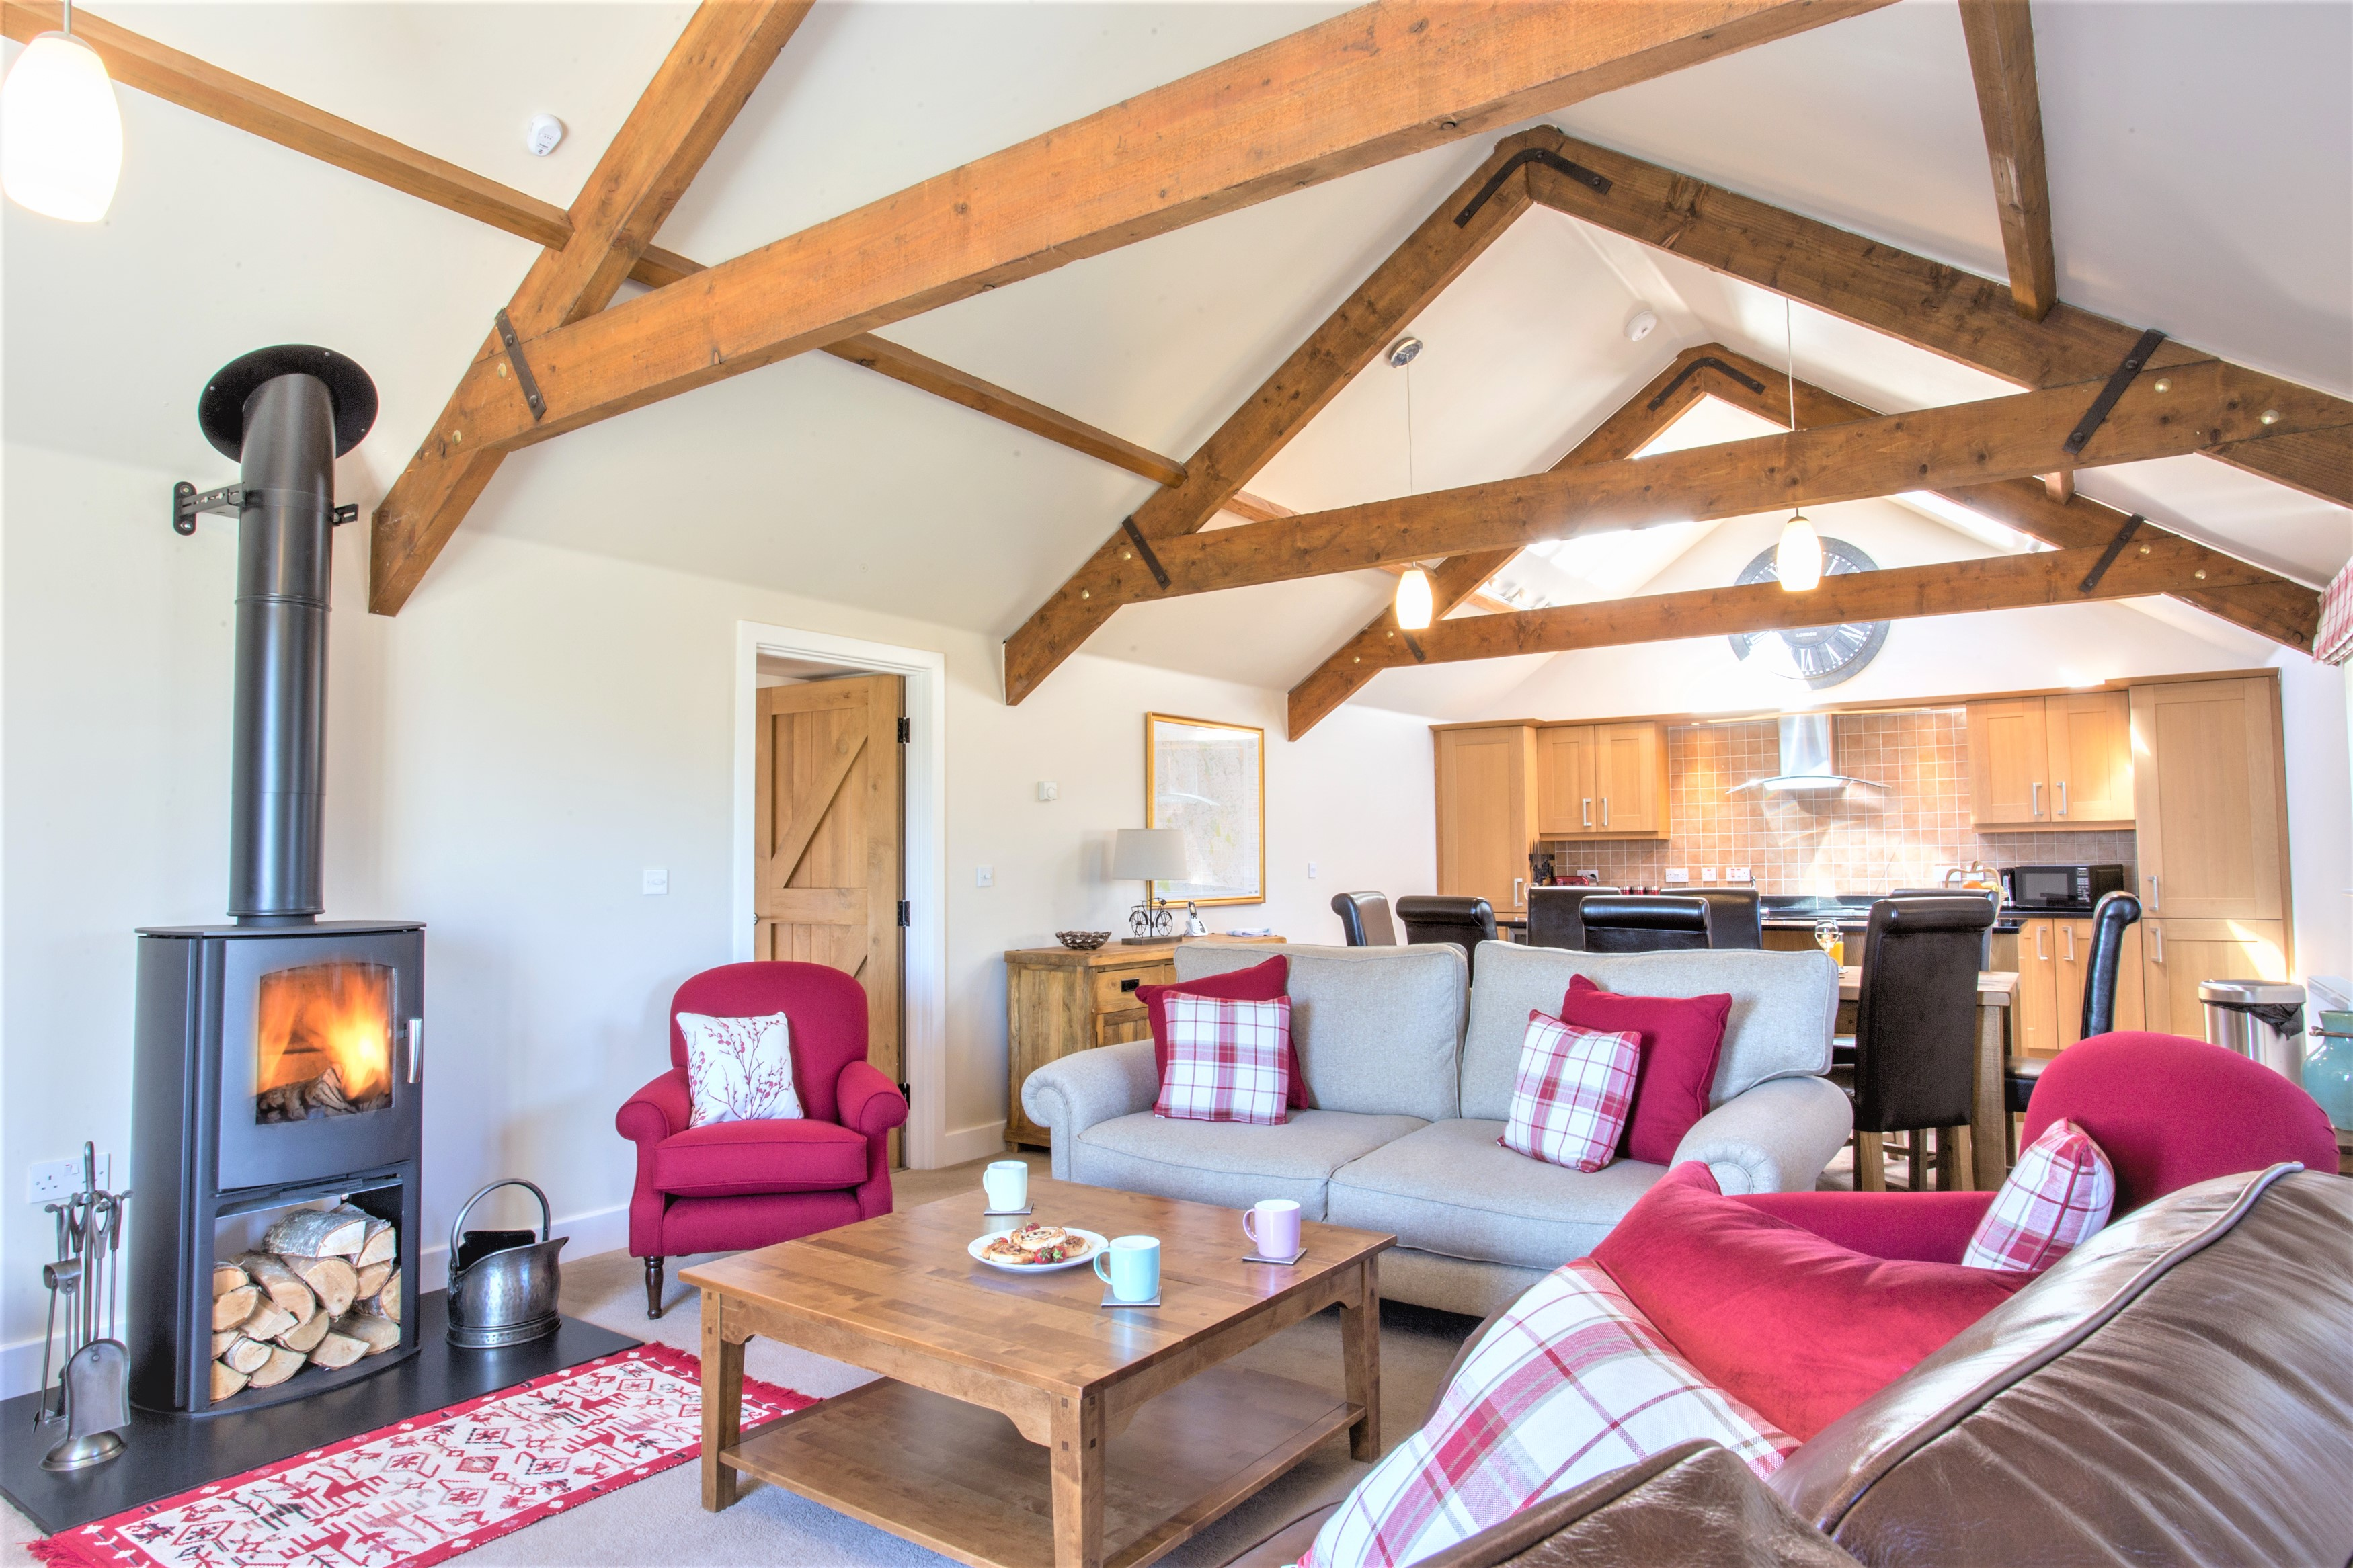 luxury holiday cottages available in the summer for families, holiday cottage in Northumberland available for Easter